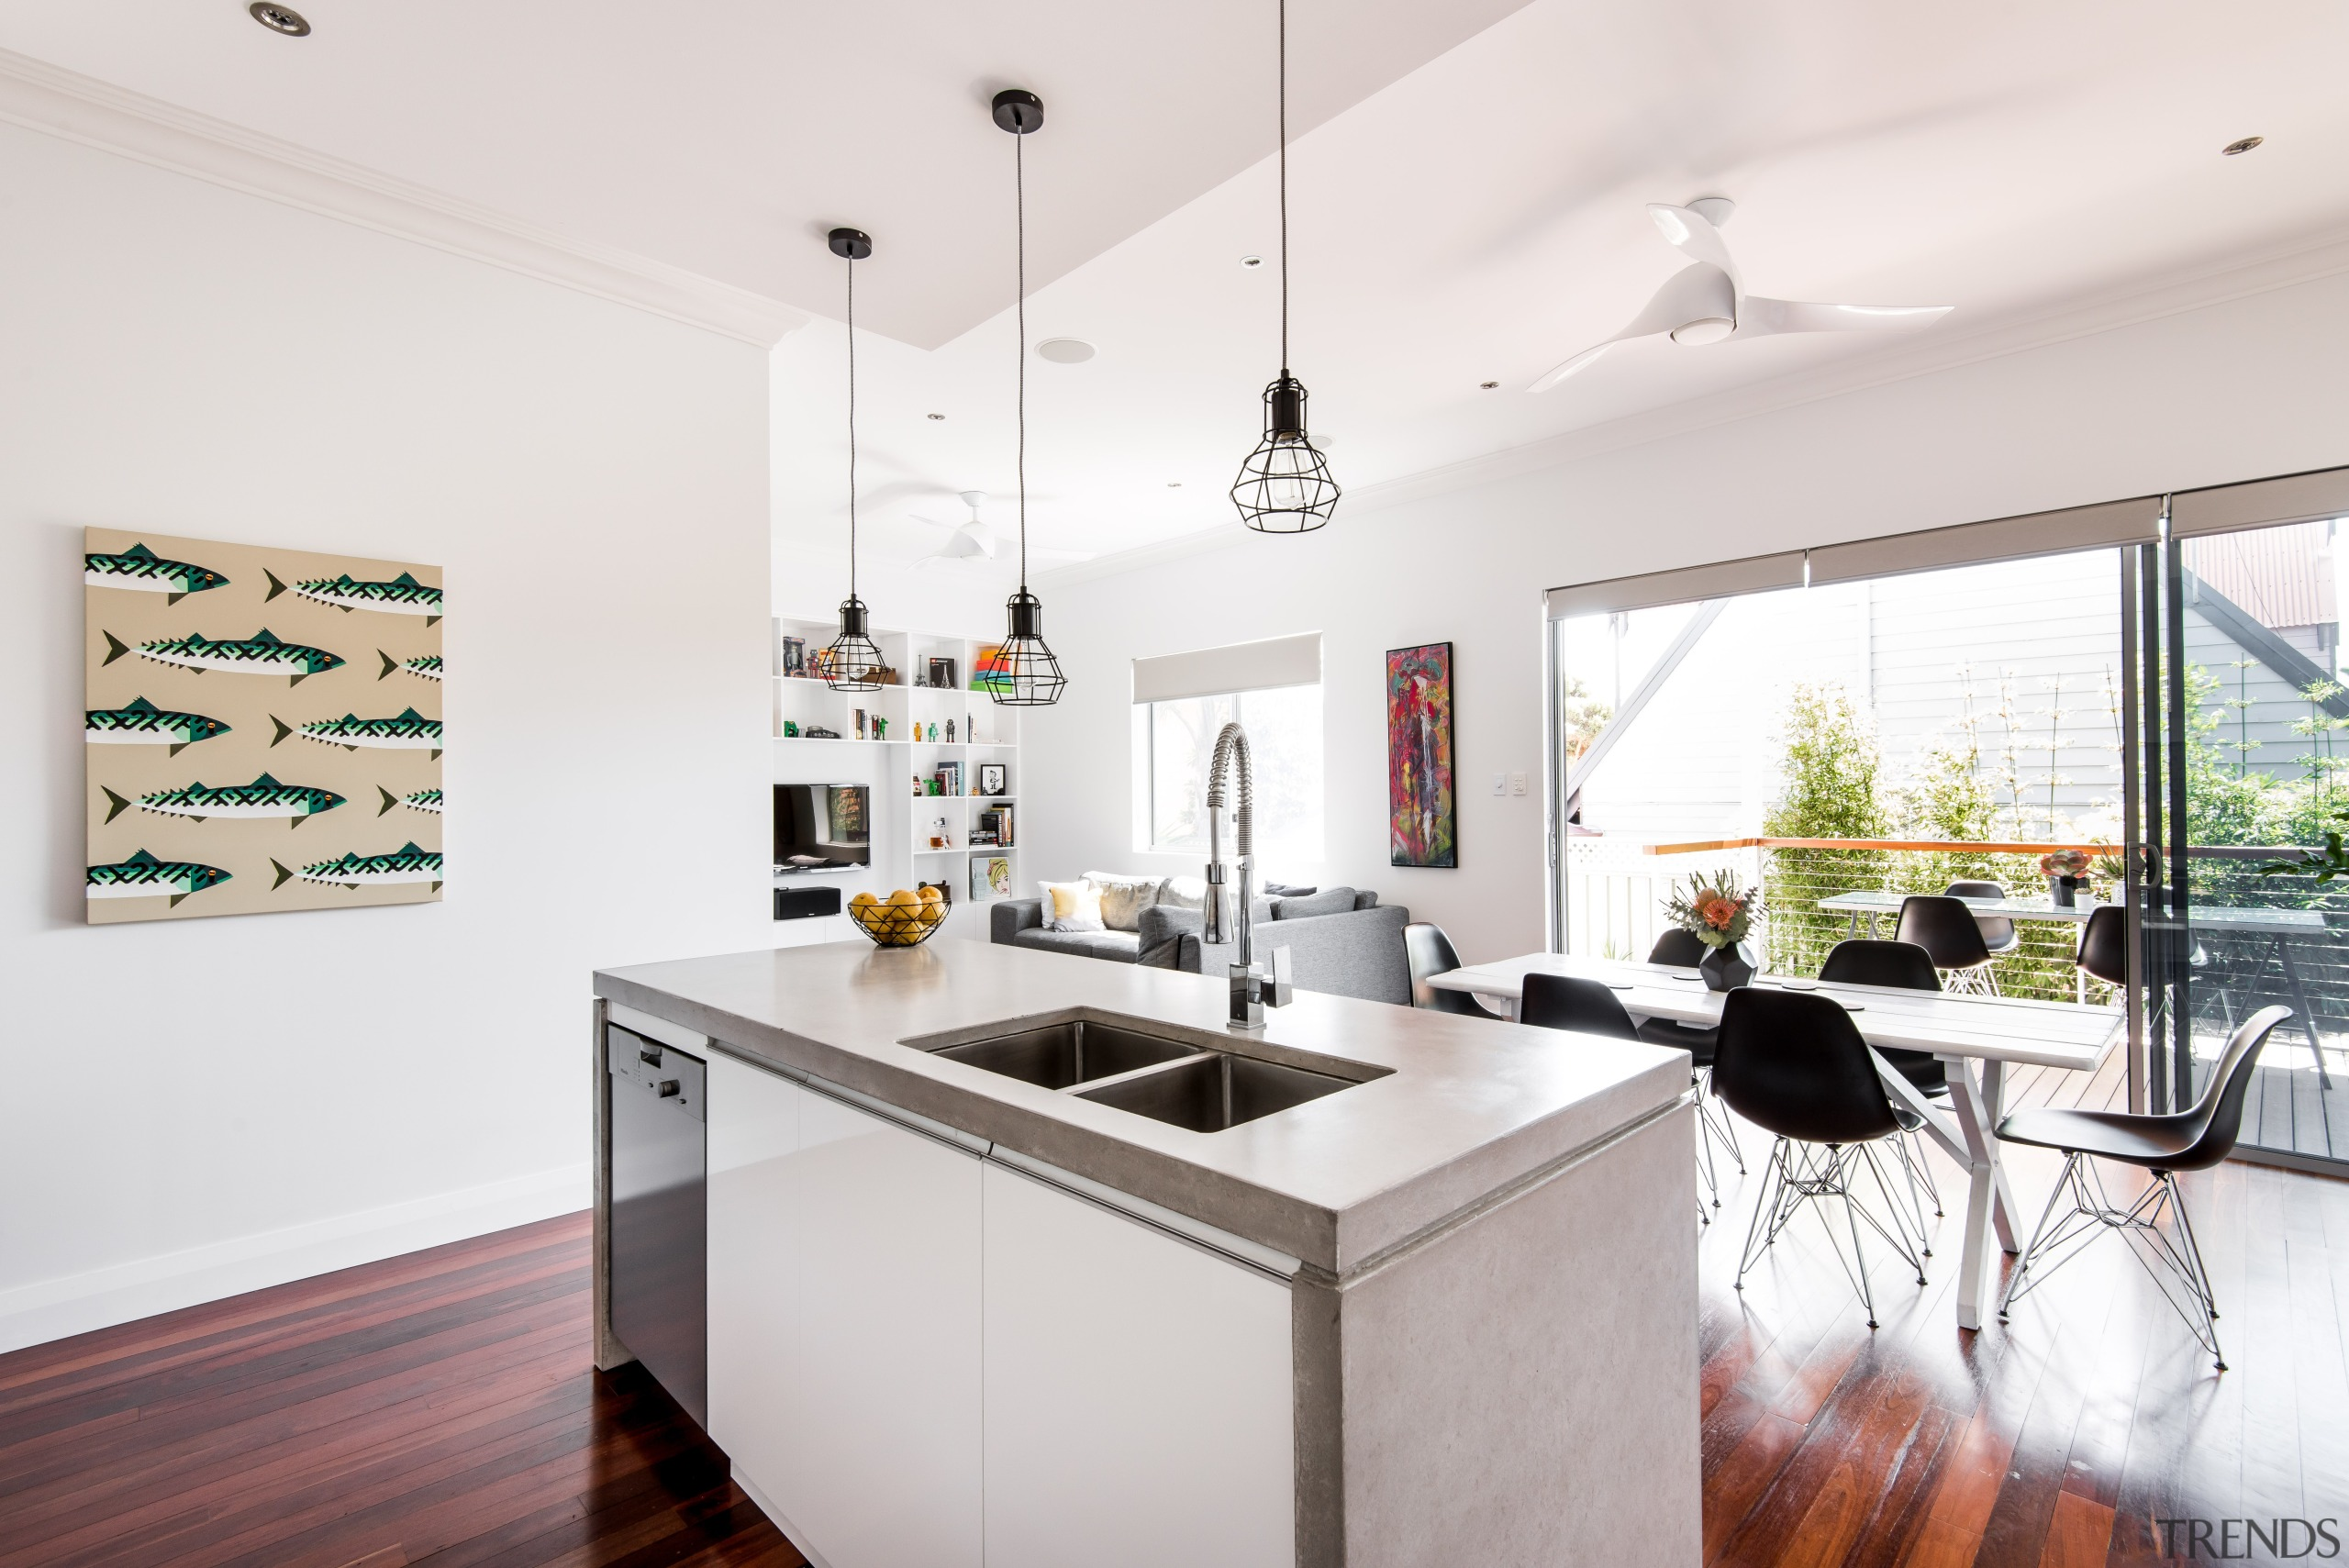 A key element in the re-working of this architecture, black-and-white, building, cabinetry, ceiling, countertop, design, floor, flooring, furniture, home, house, interior design, kitchen, kitchen stove, laminate flooring, material property, property, real estate, room, table, white, wood flooring, white